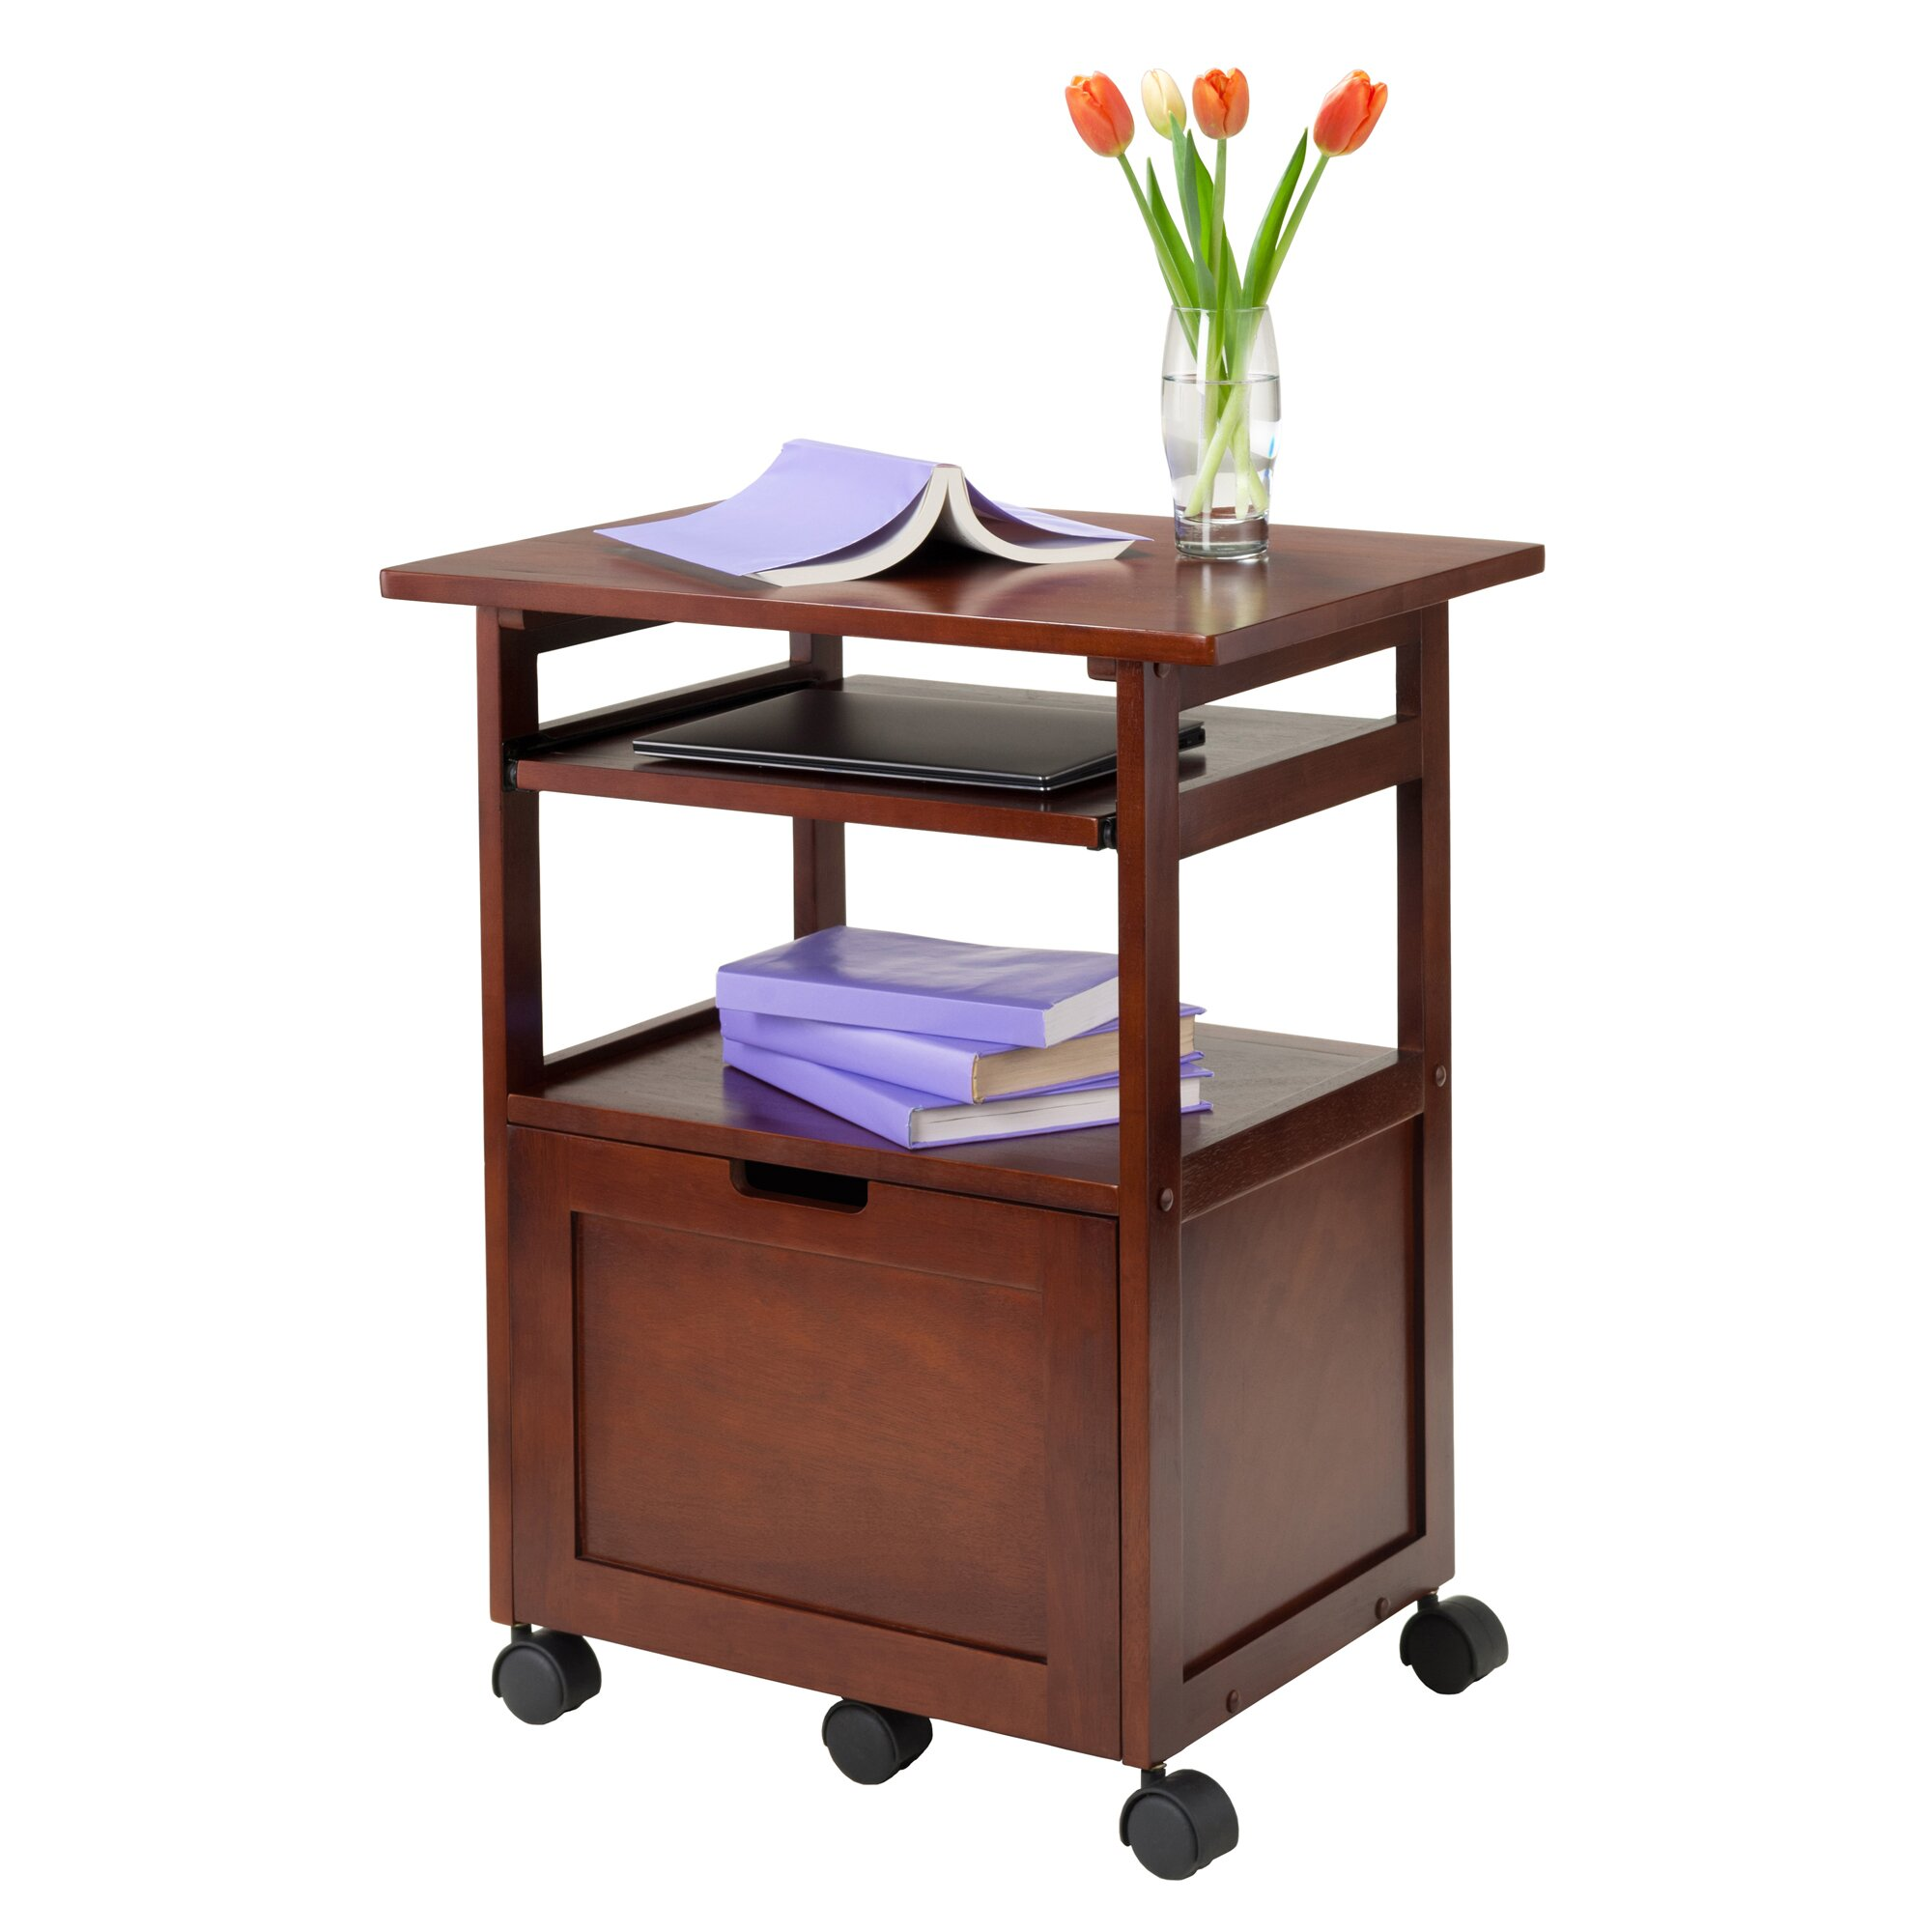 Andover Mills Piper Work Cart Printer Stand with  : Octavia 30 Swivel Bar Stool with Cushion ANDO3078 from www.wayfair.com size 2000 x 2000 jpeg 308kB